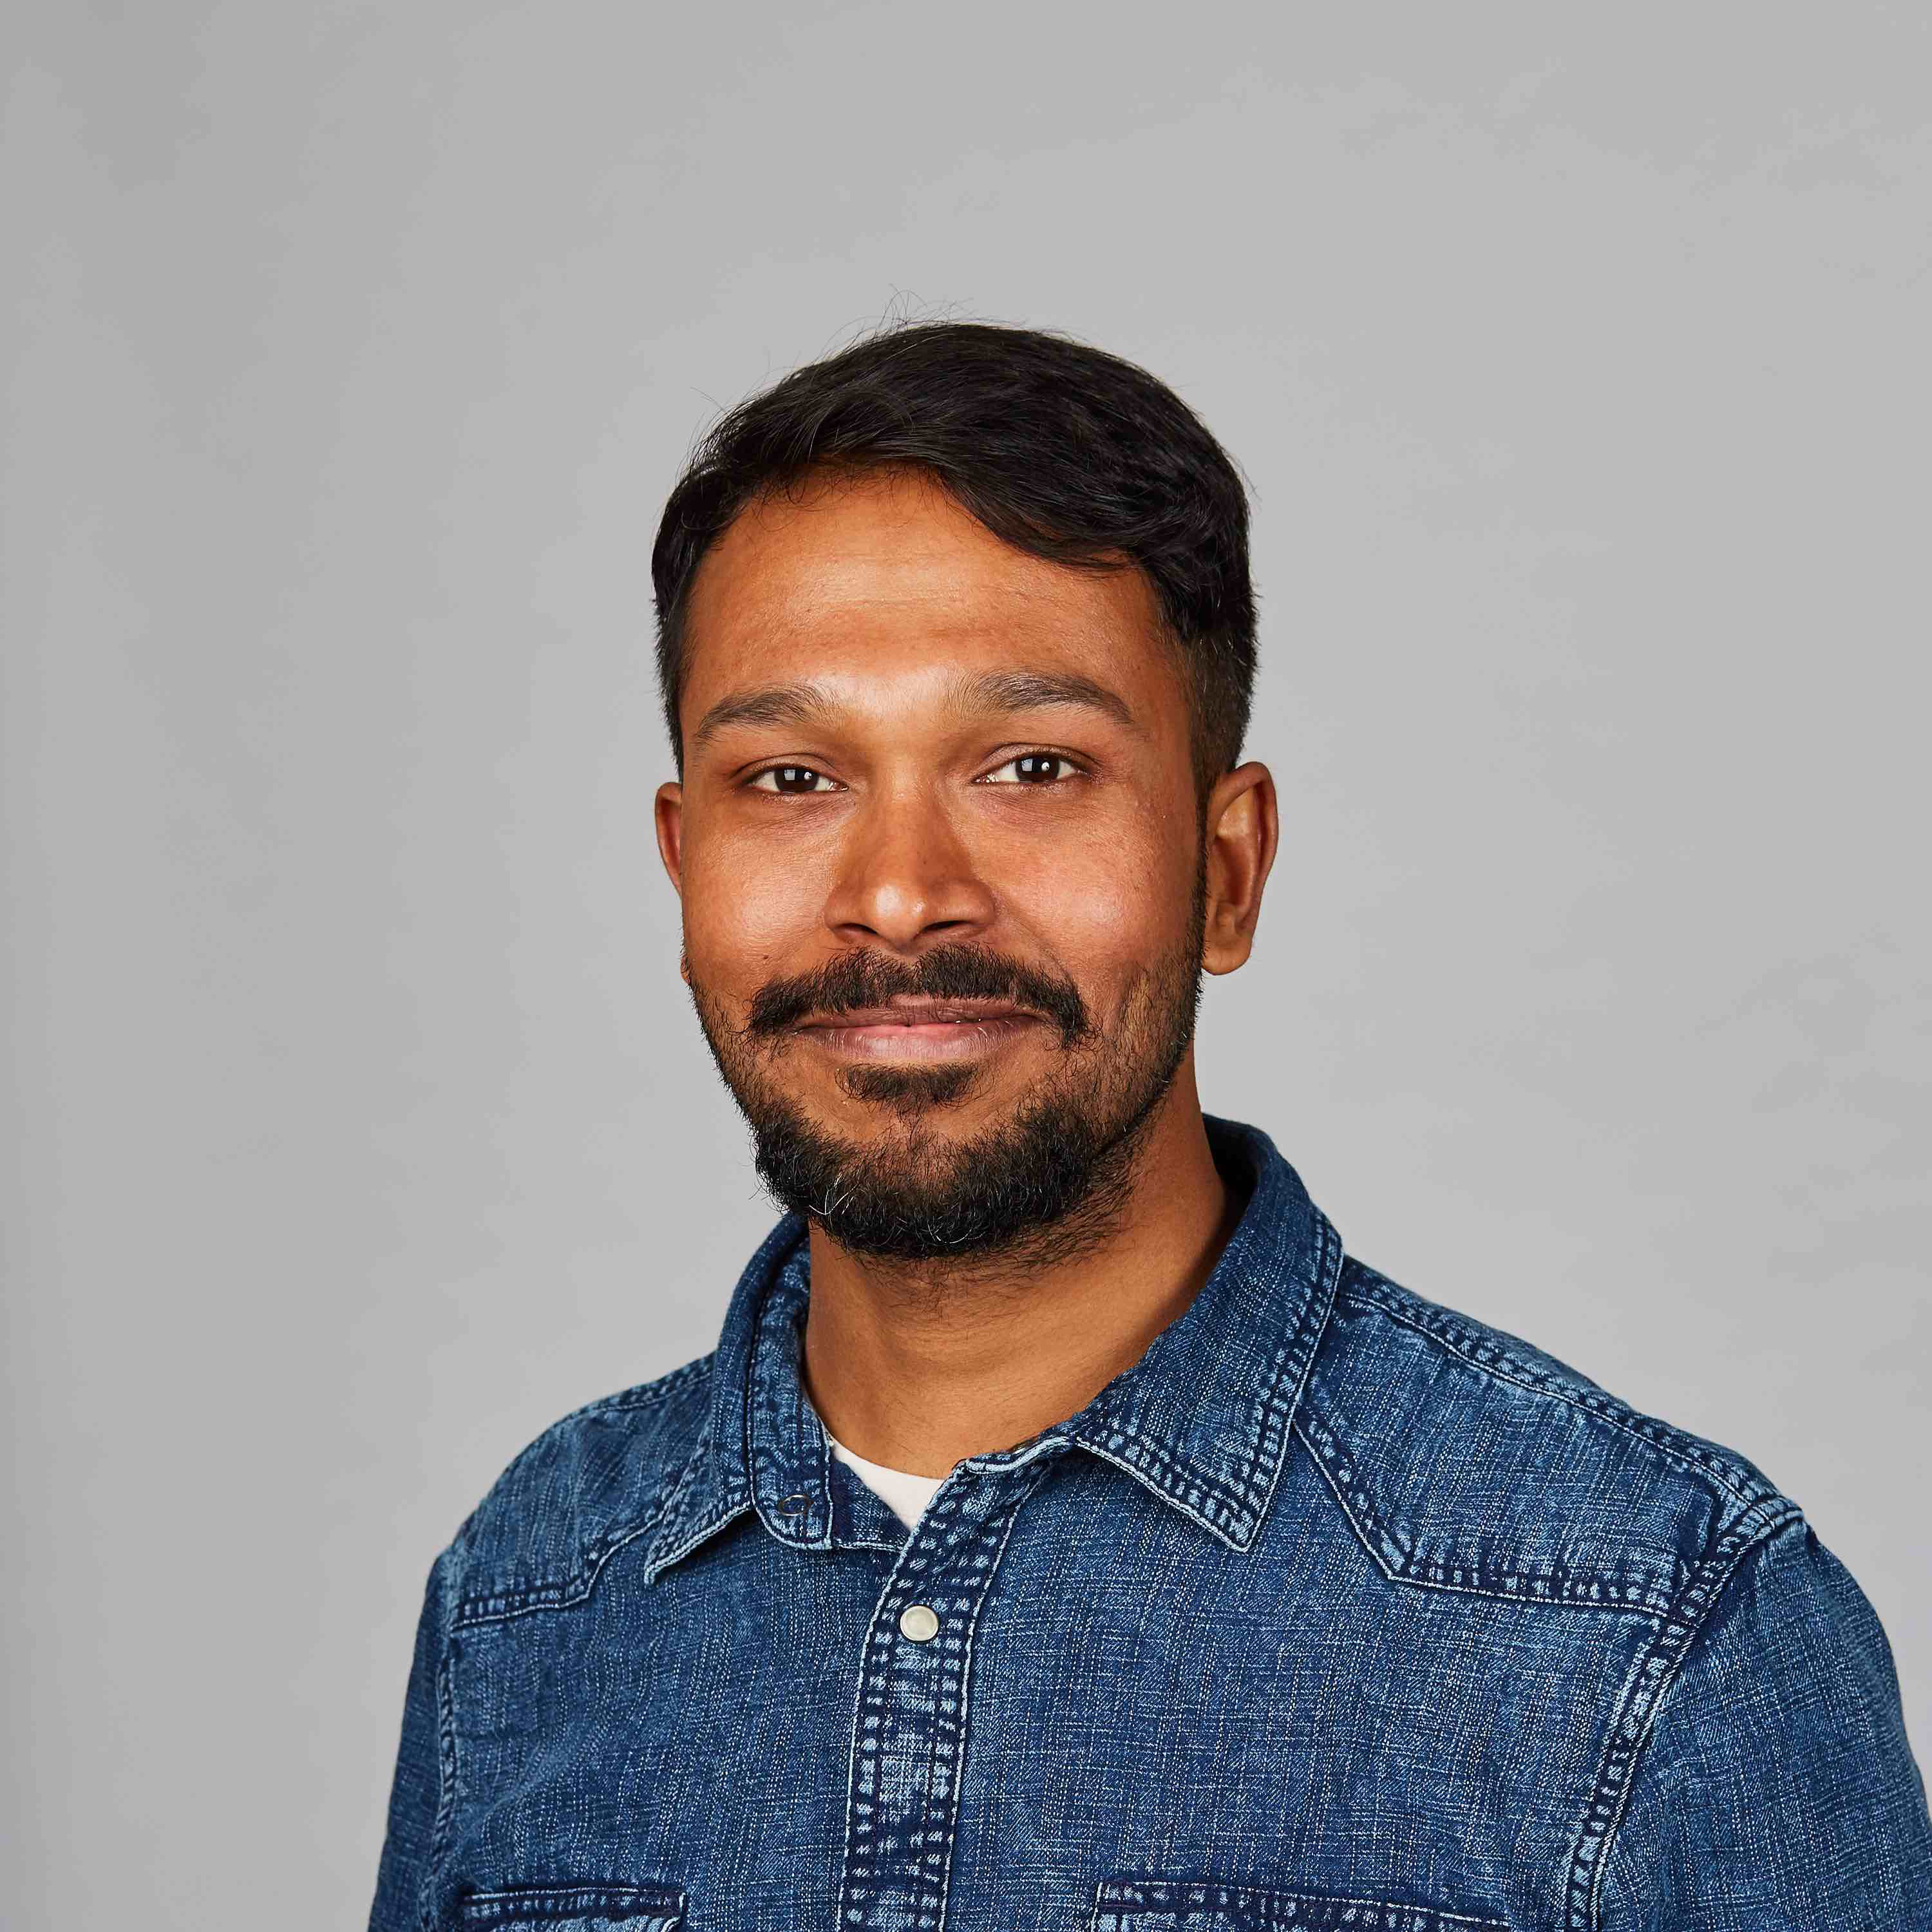 picture of vikrant venkataraman - senior researcher at mobi